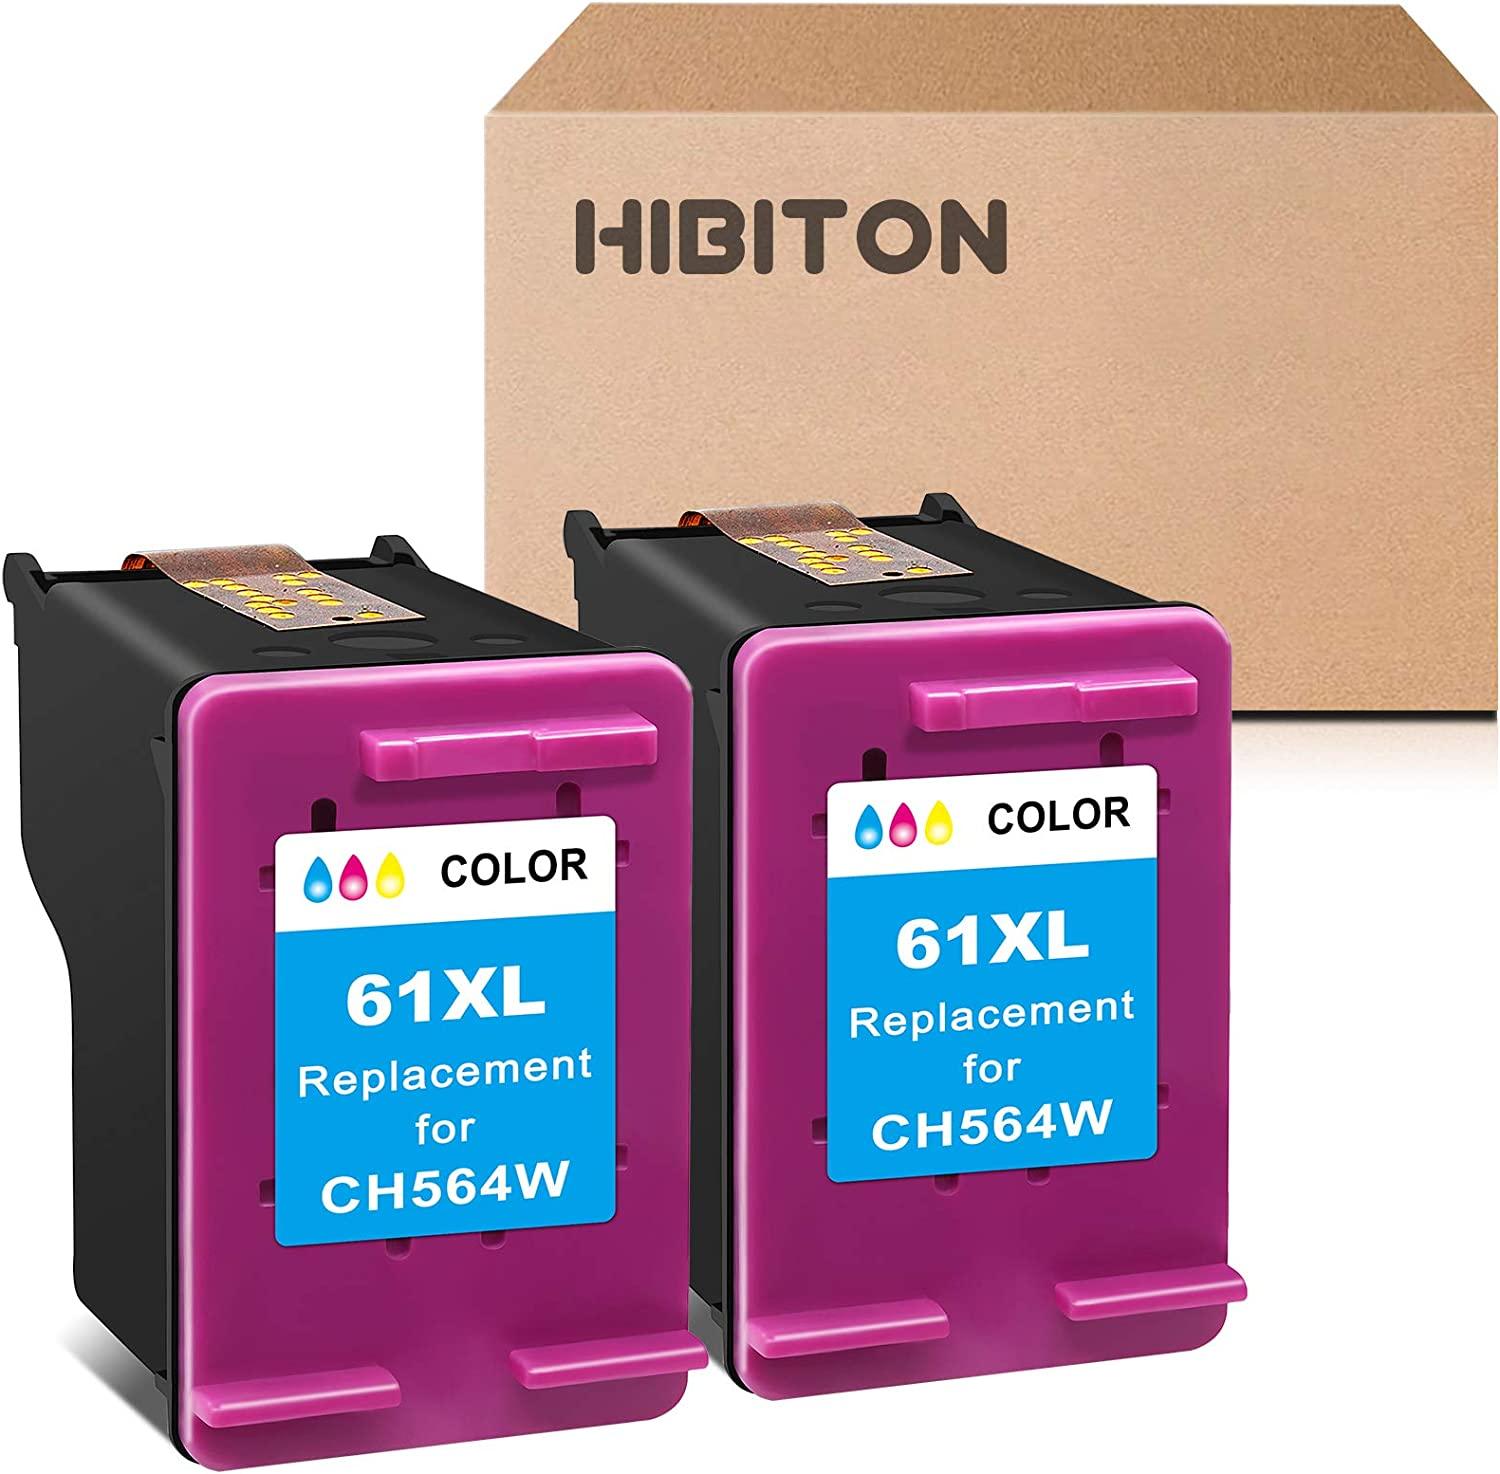 HibiTon Max 80% OFF Fashion Remanufactured Ink Cartridge Replacement HP 61XL for 61